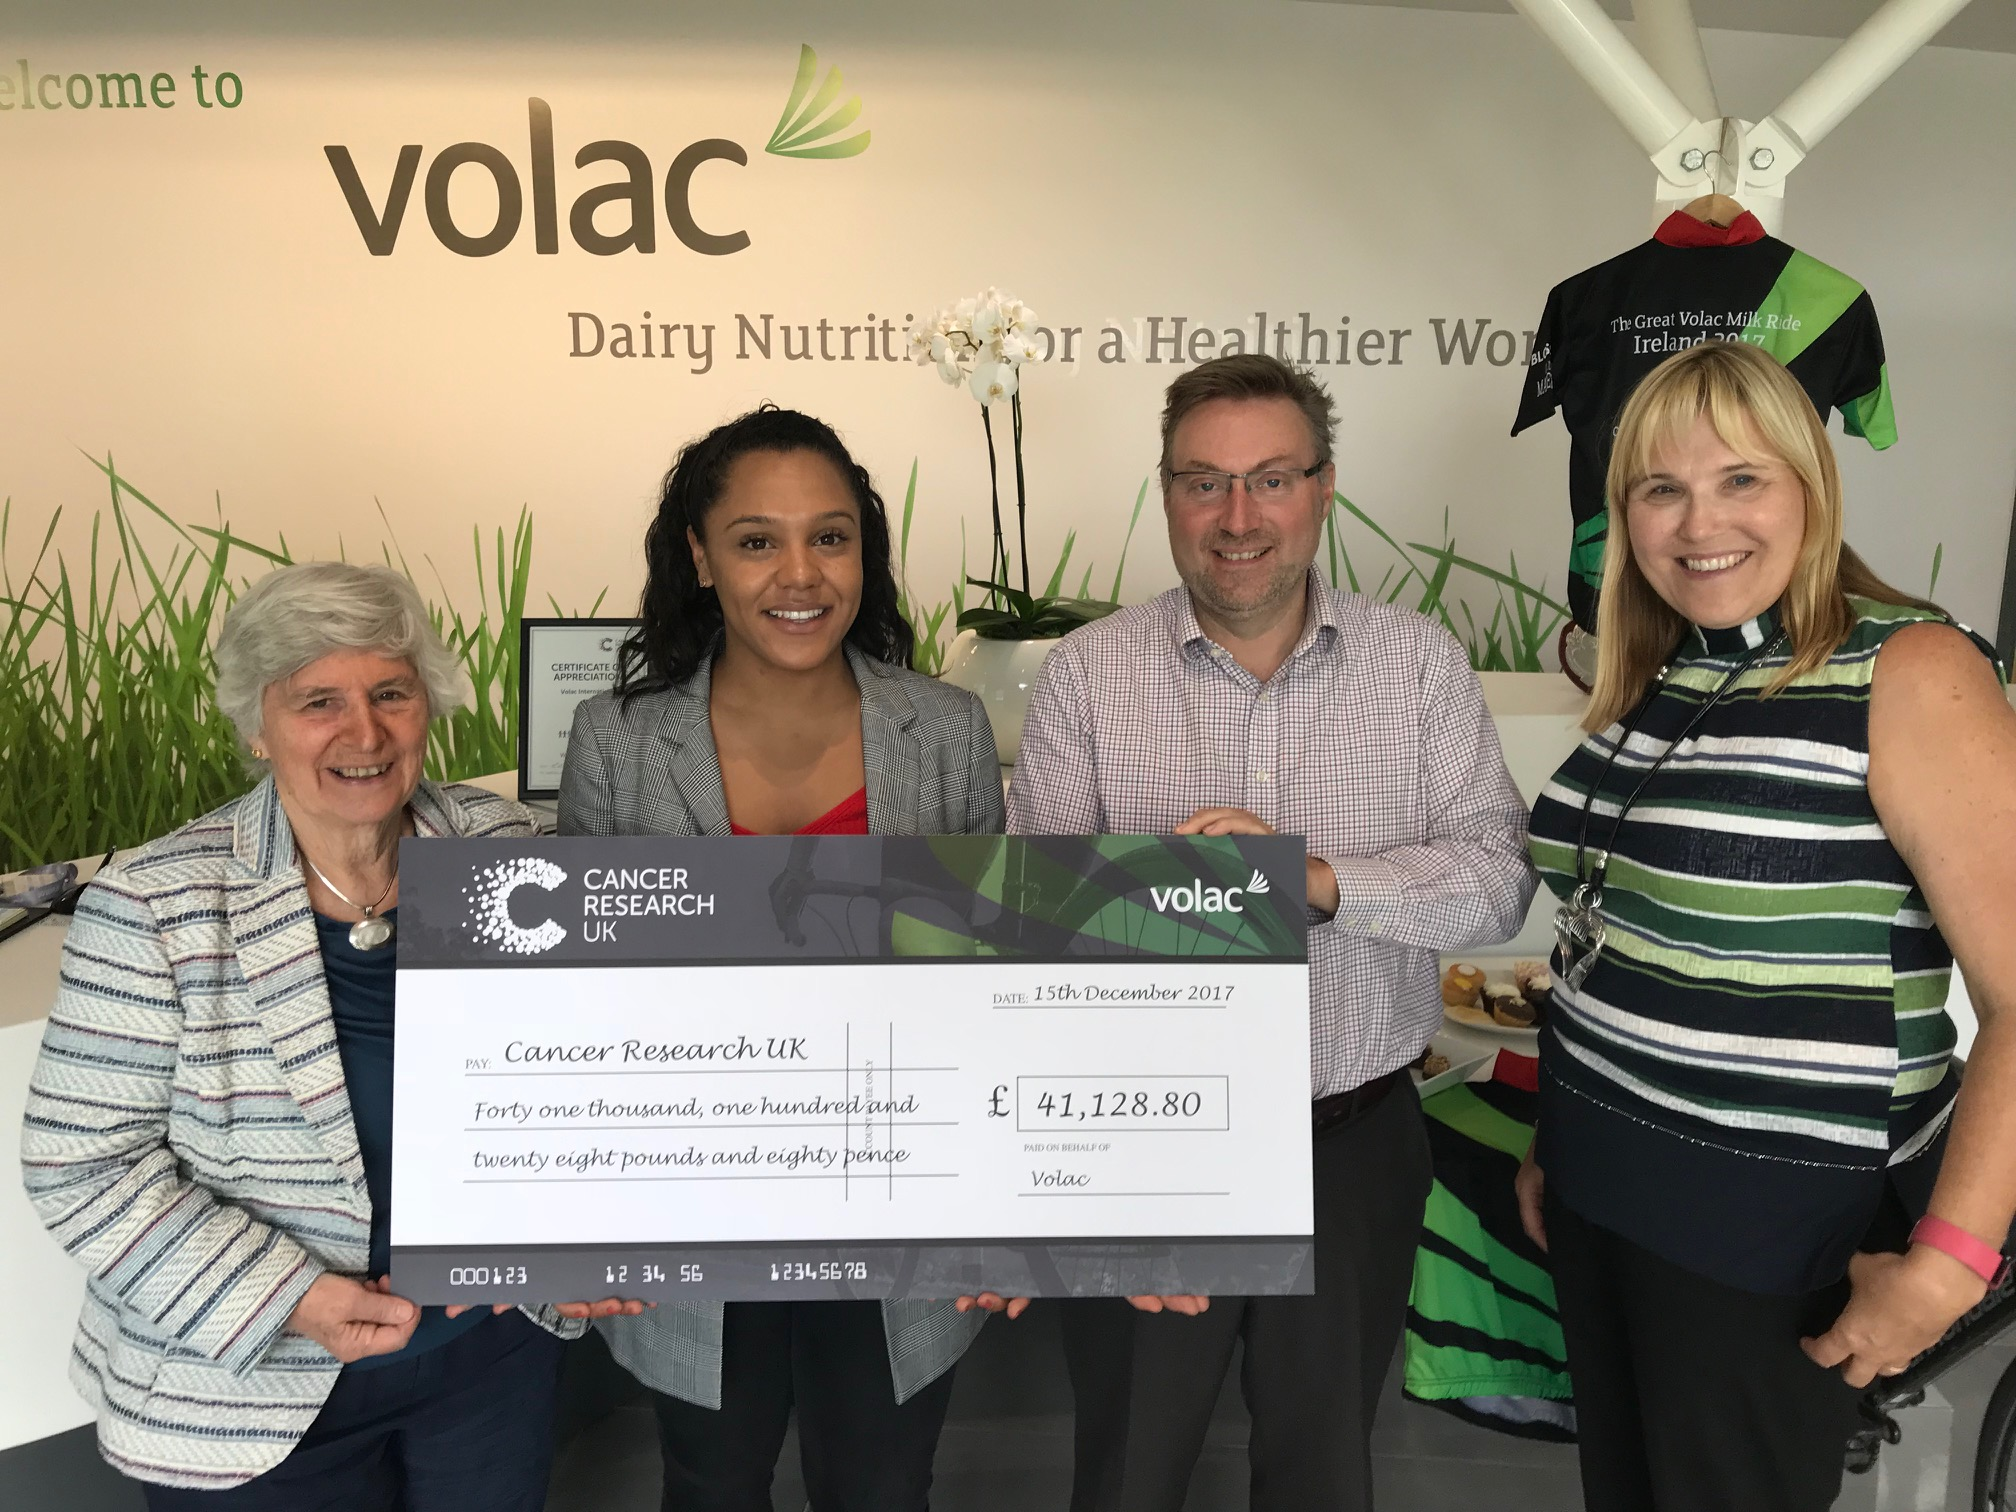 From L-R are pictured: Jane Neville (The Betty Lawes Foundation), Cally Cardines (Cancer Research UK), David Neville - Managing Director – Animal Nutrition (Volac), and  Jackie Bradley- Regional Product Manager – Animal Nutrition (Volac).